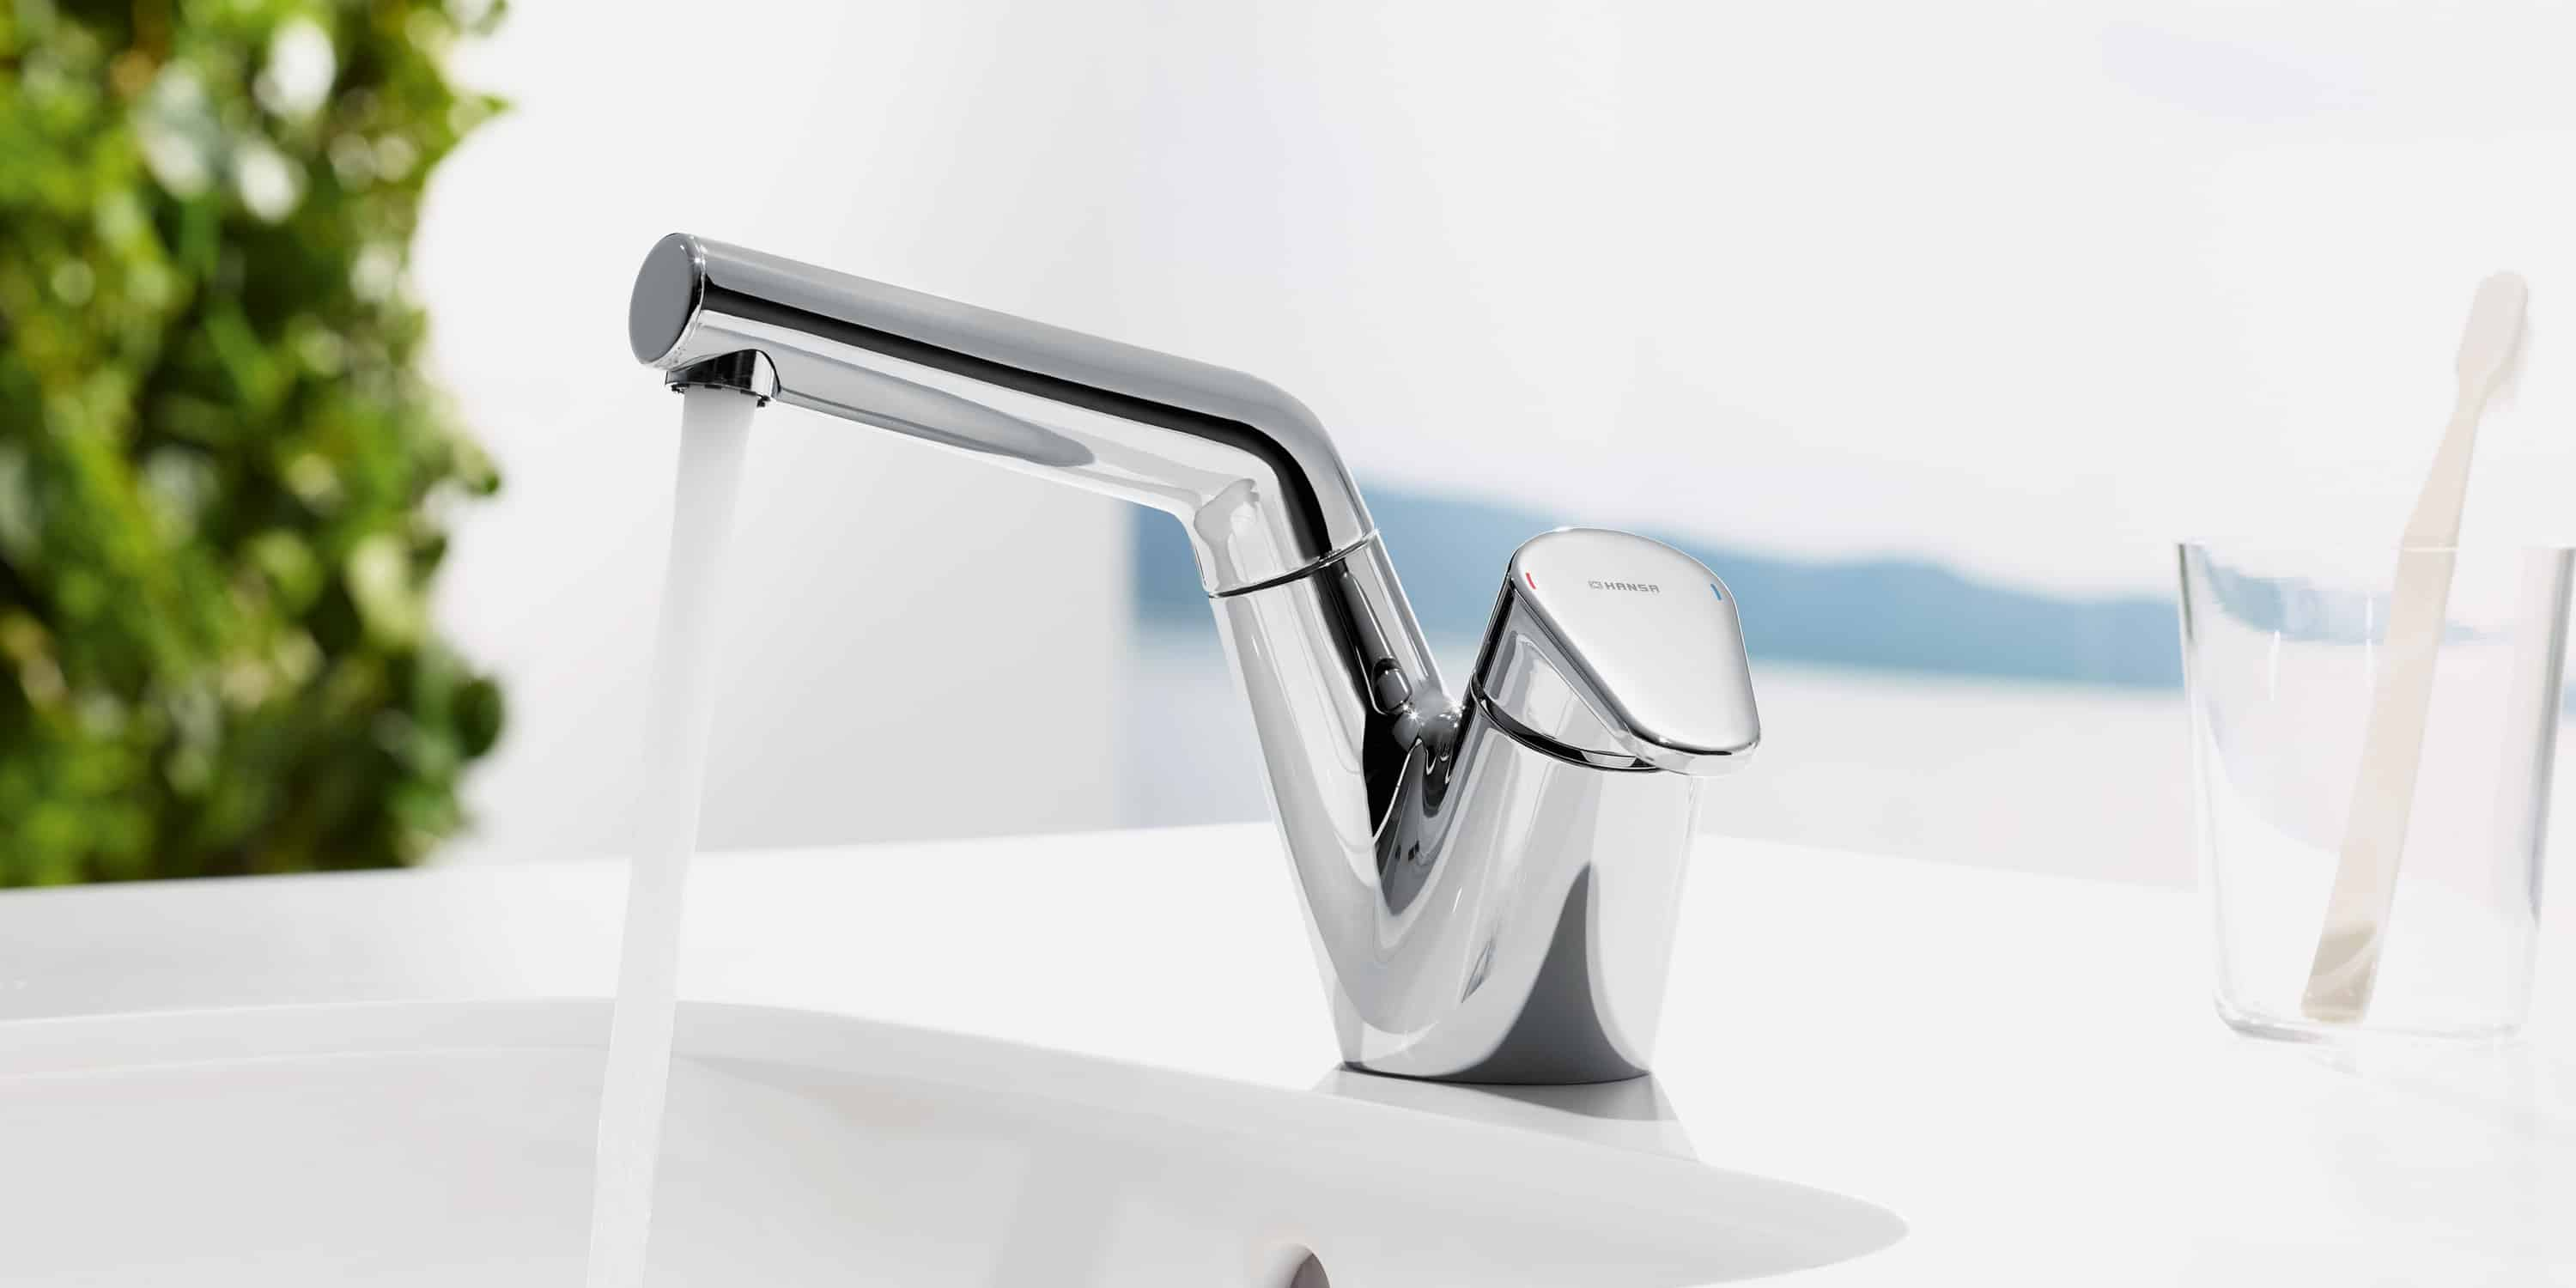 wall trendy ht perfect in benelave with brushed tap original hansa sink neo mounted faucet faucets kitchen price steel double fittings colonial